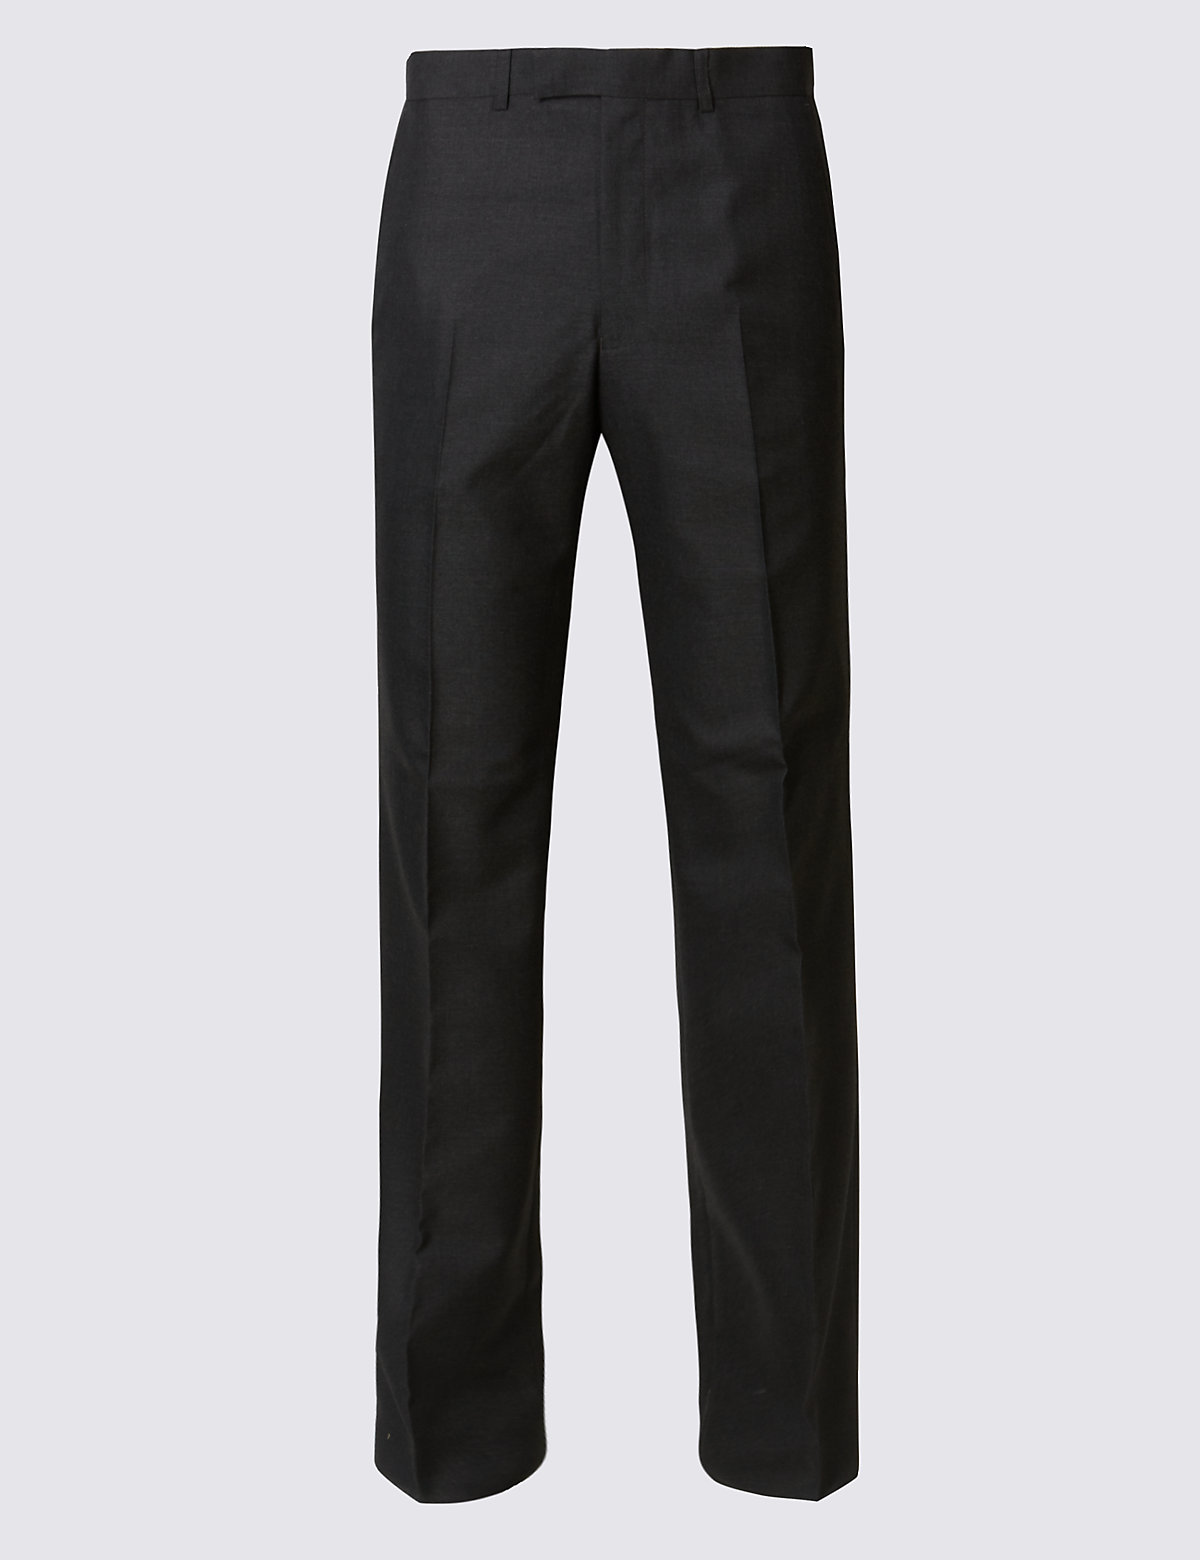 Marks & Spencer Charcoal Regular Fit Trousers